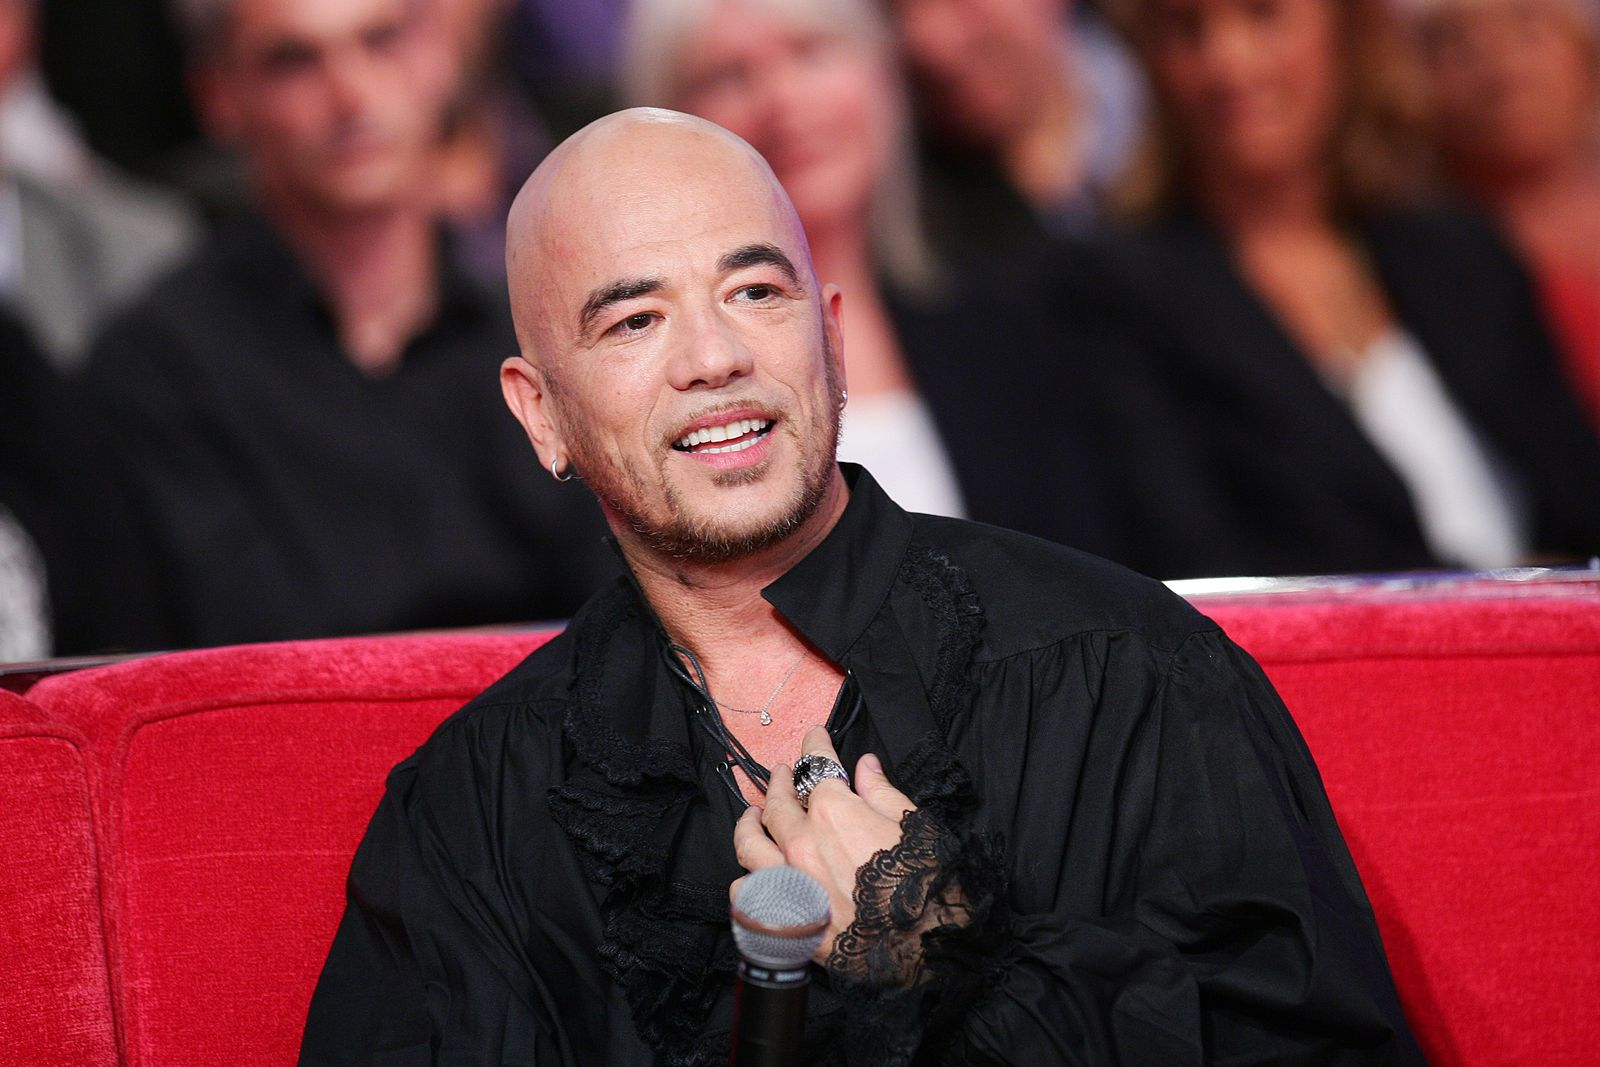 Le chanteur Pascal Obispo | Photo : Getty Images